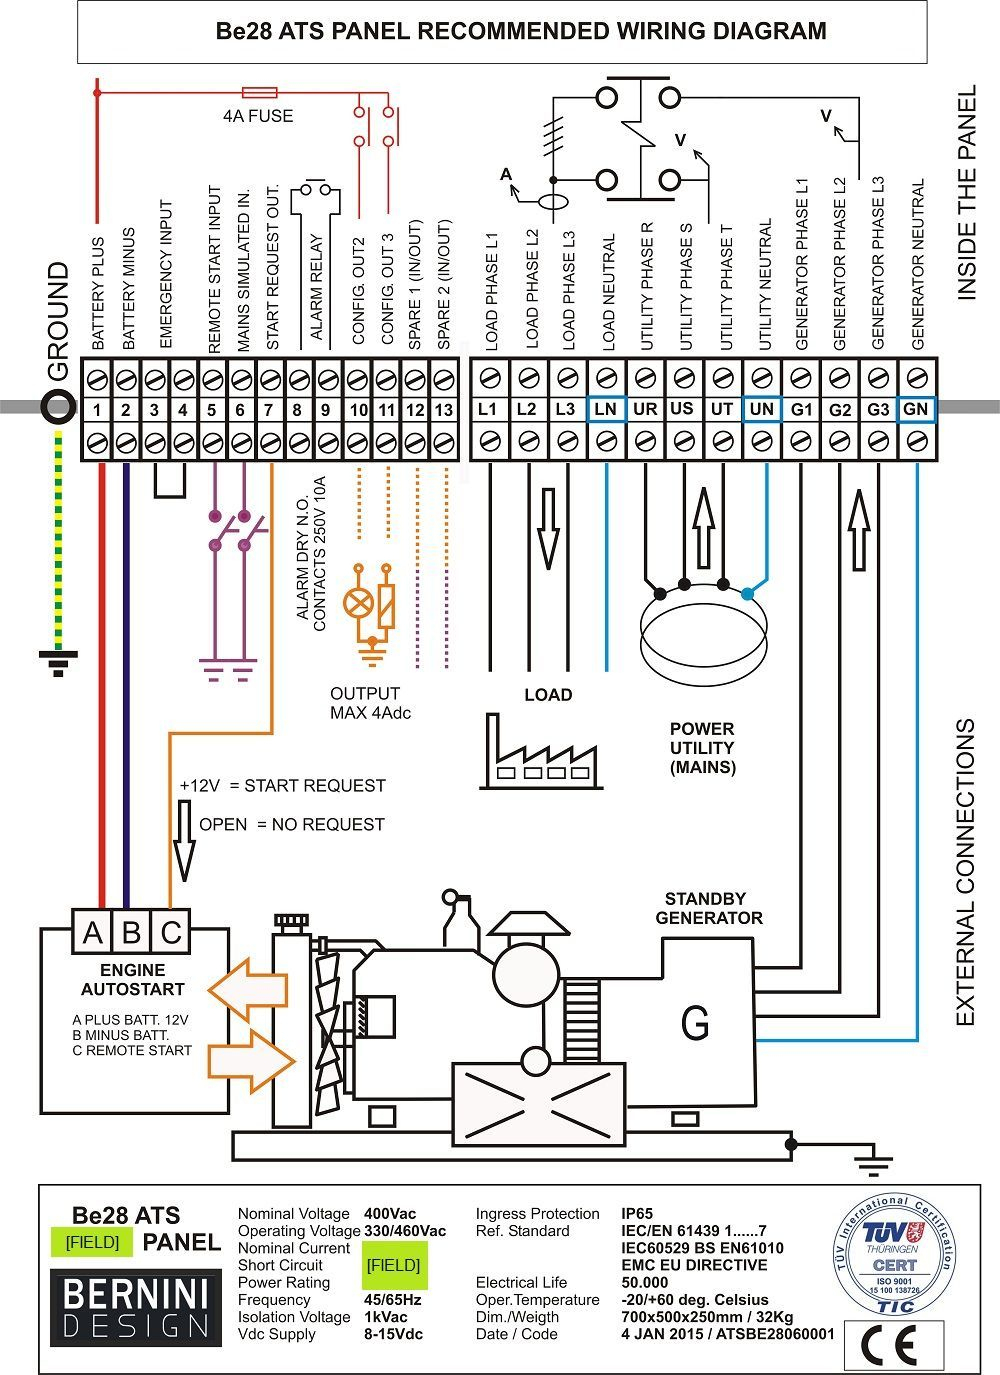 Generac Automatic Transfer Switch Wiring Diagram And Generator - Generac Automatic Transfer Switch Wiring Diagram